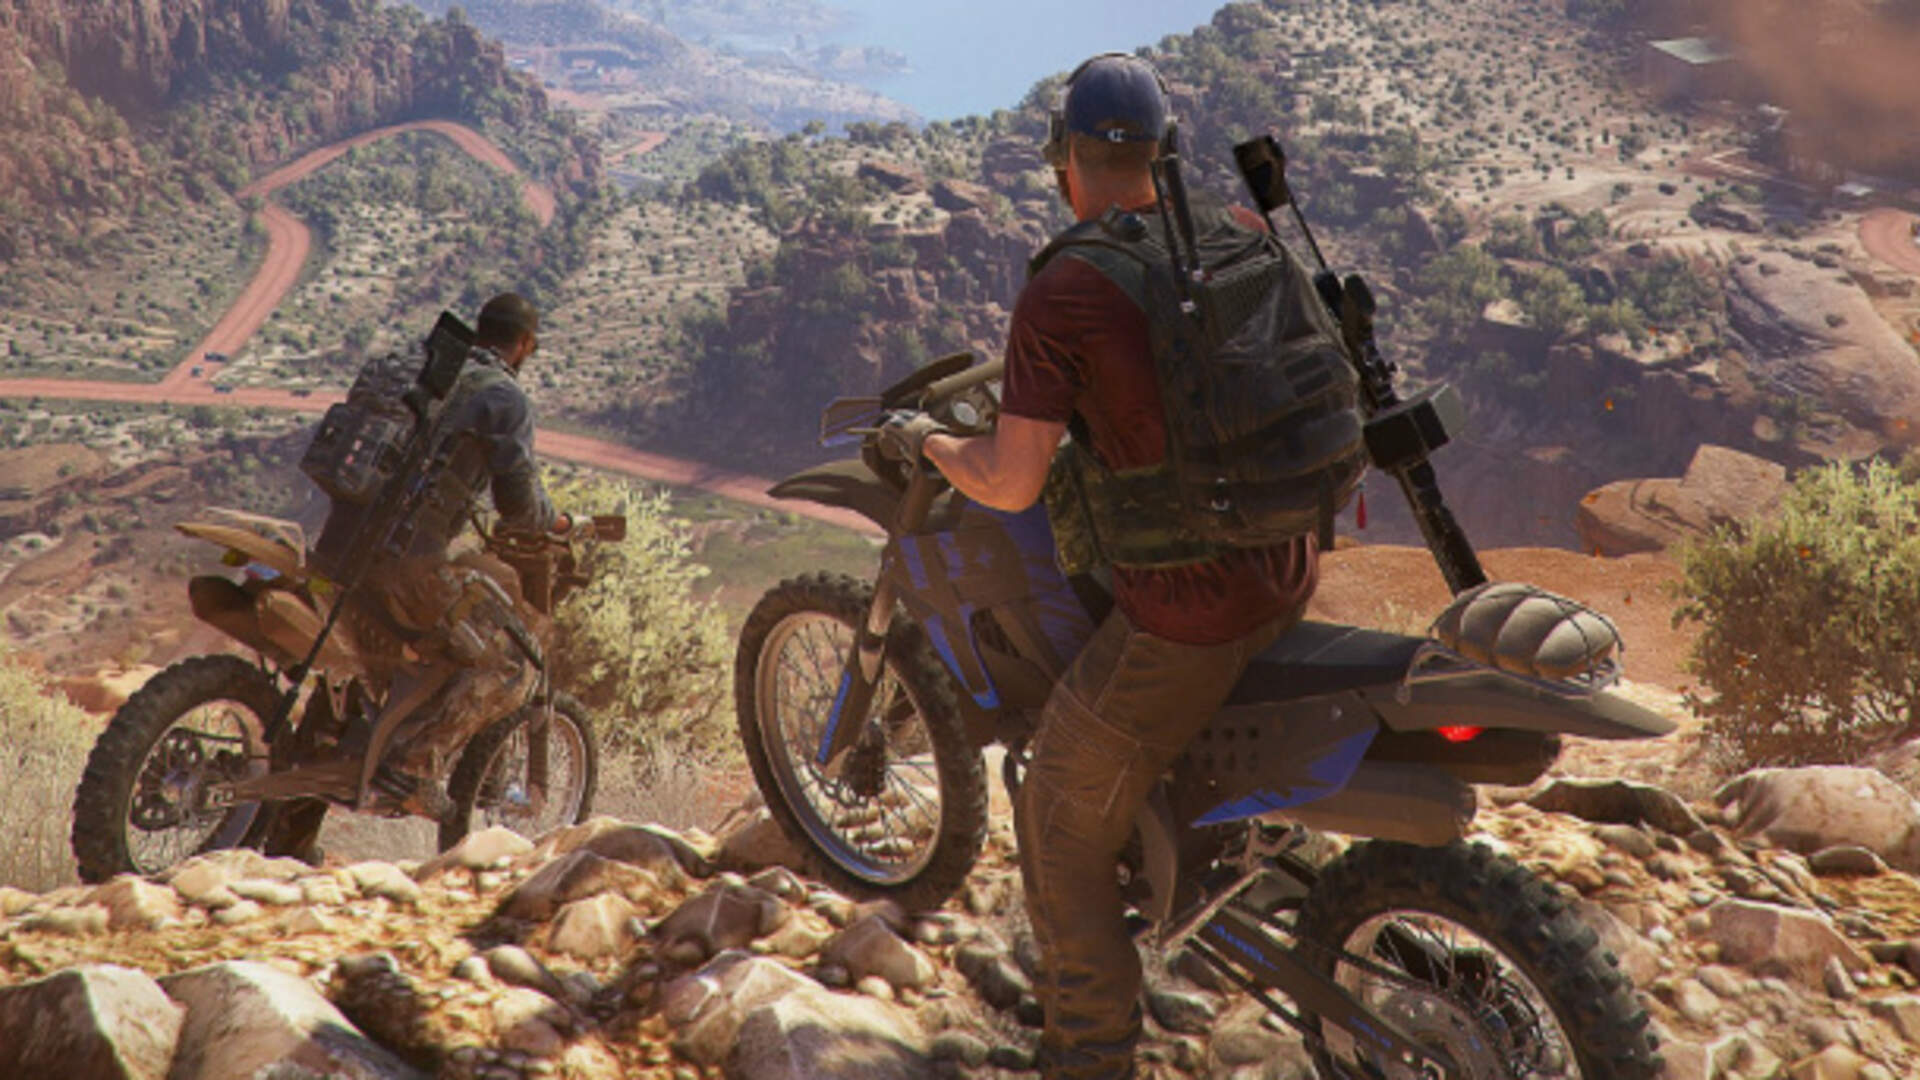 Ghost Recon Wildlands' Opt-In Storytelling Means the Real Fun Is Telling Your Own Story